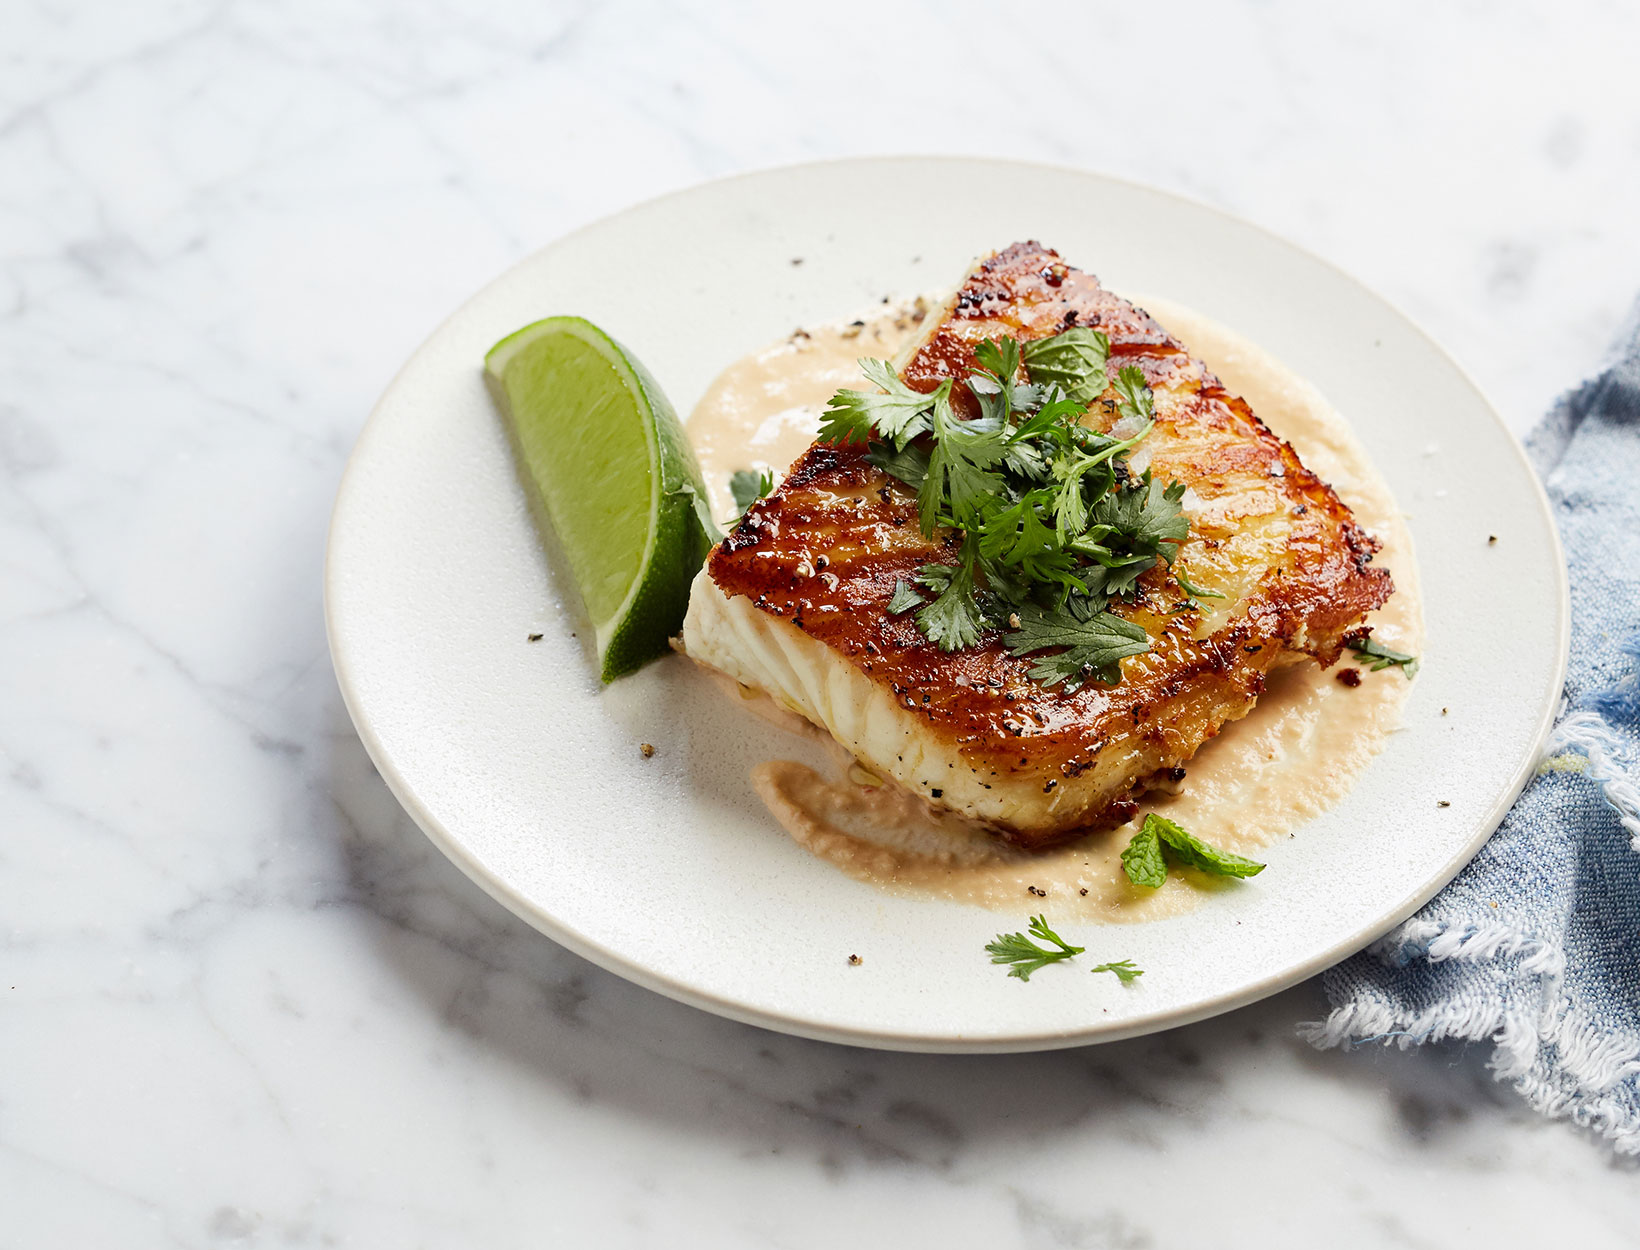 Pan-Seared Halibut with Peanut Drizzle and Herbs